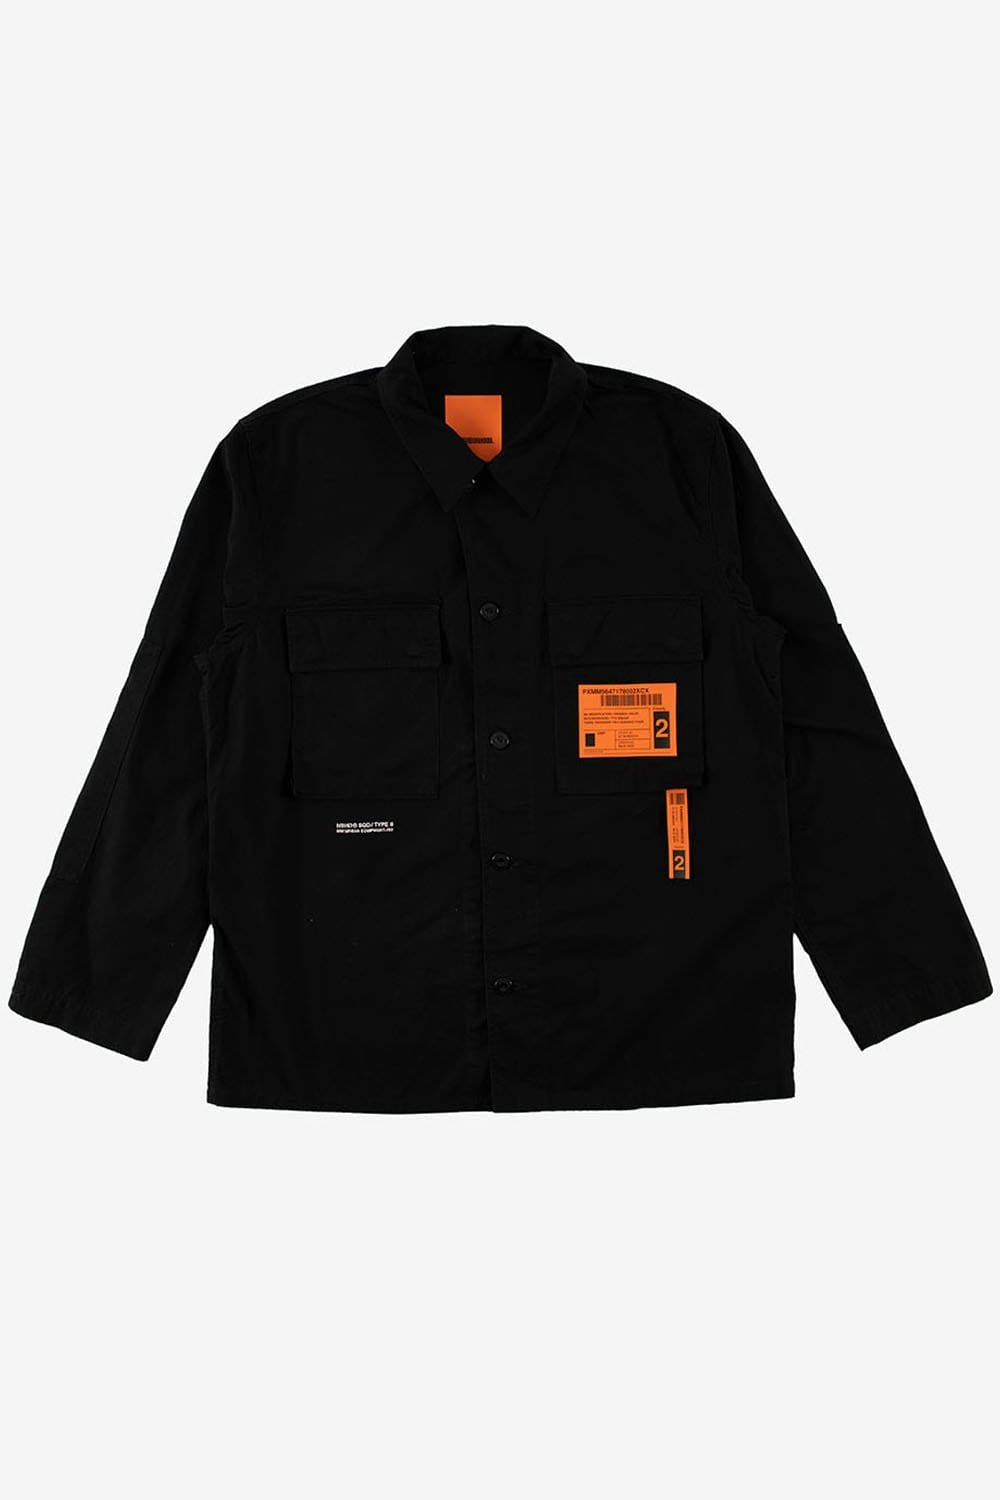 Neighborhood Apparel XL BDU Long Sleeve Shirt